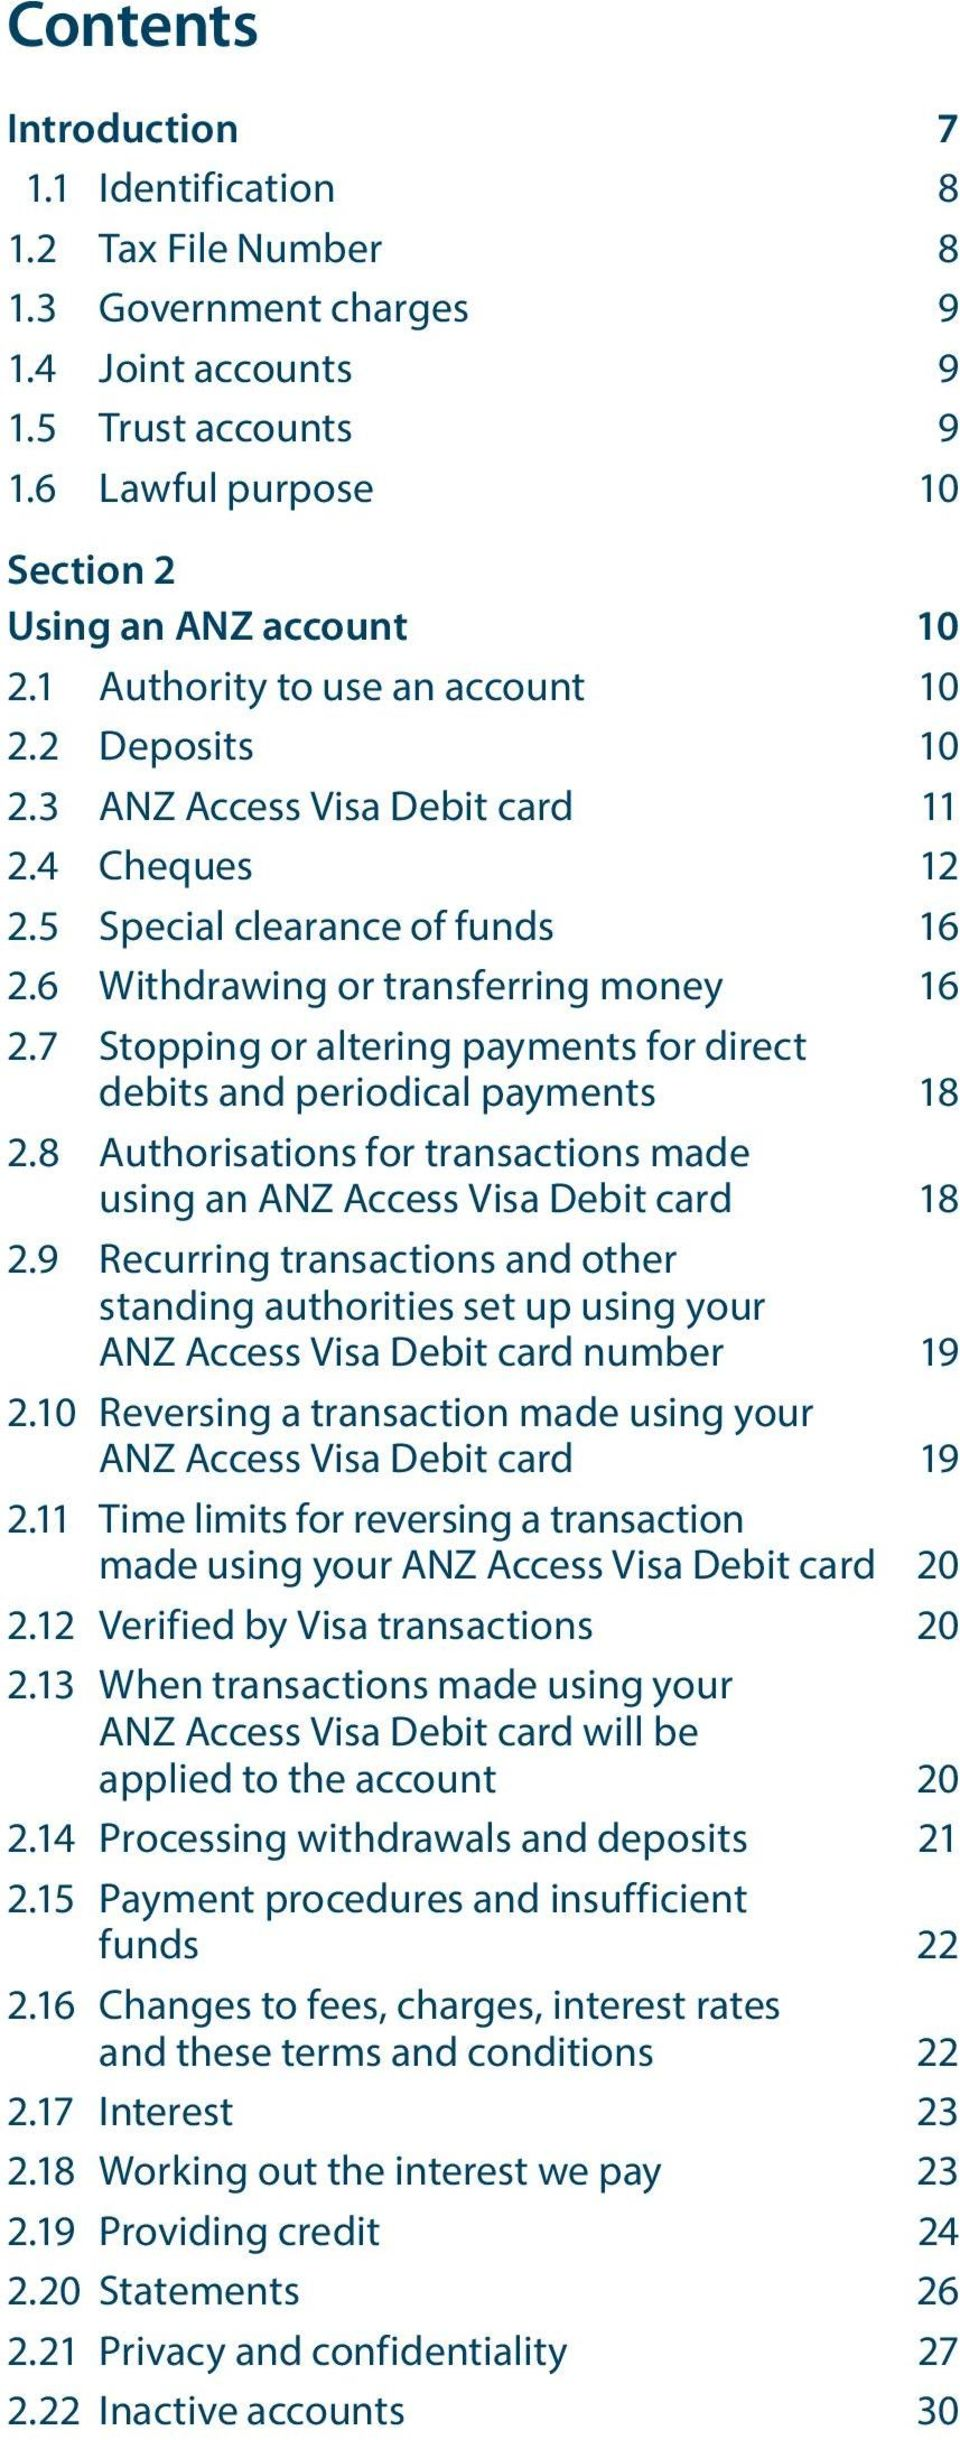 7 Stopping or altering payments for direct debits and periodical payments 18 2.8 Authorisations for transactions made using an ANZ Access Visa Debit card 18 2.